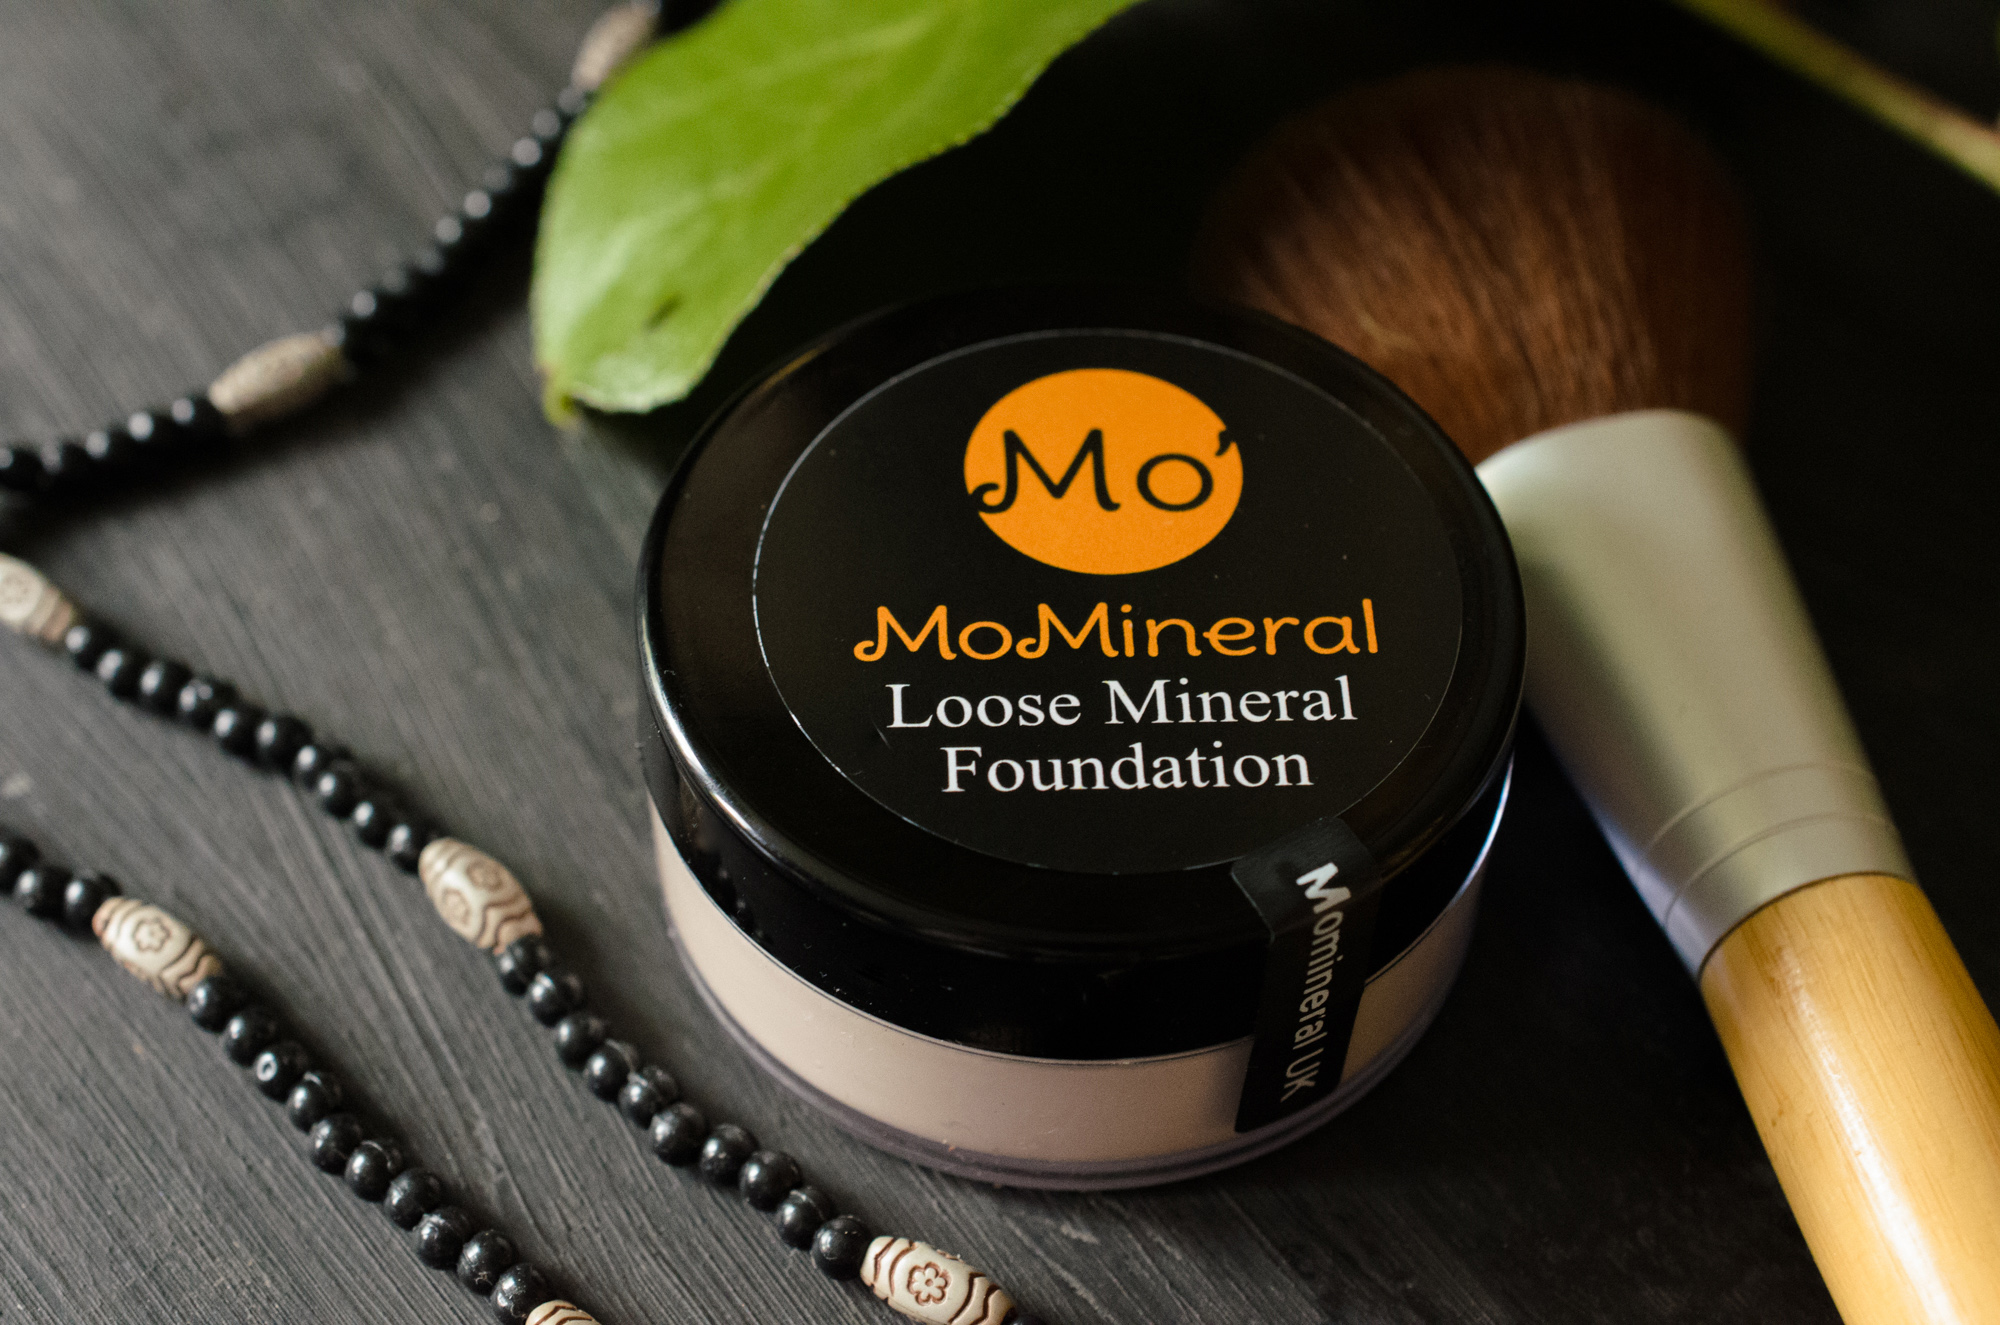 MoMineral Loose Mineral Foundation